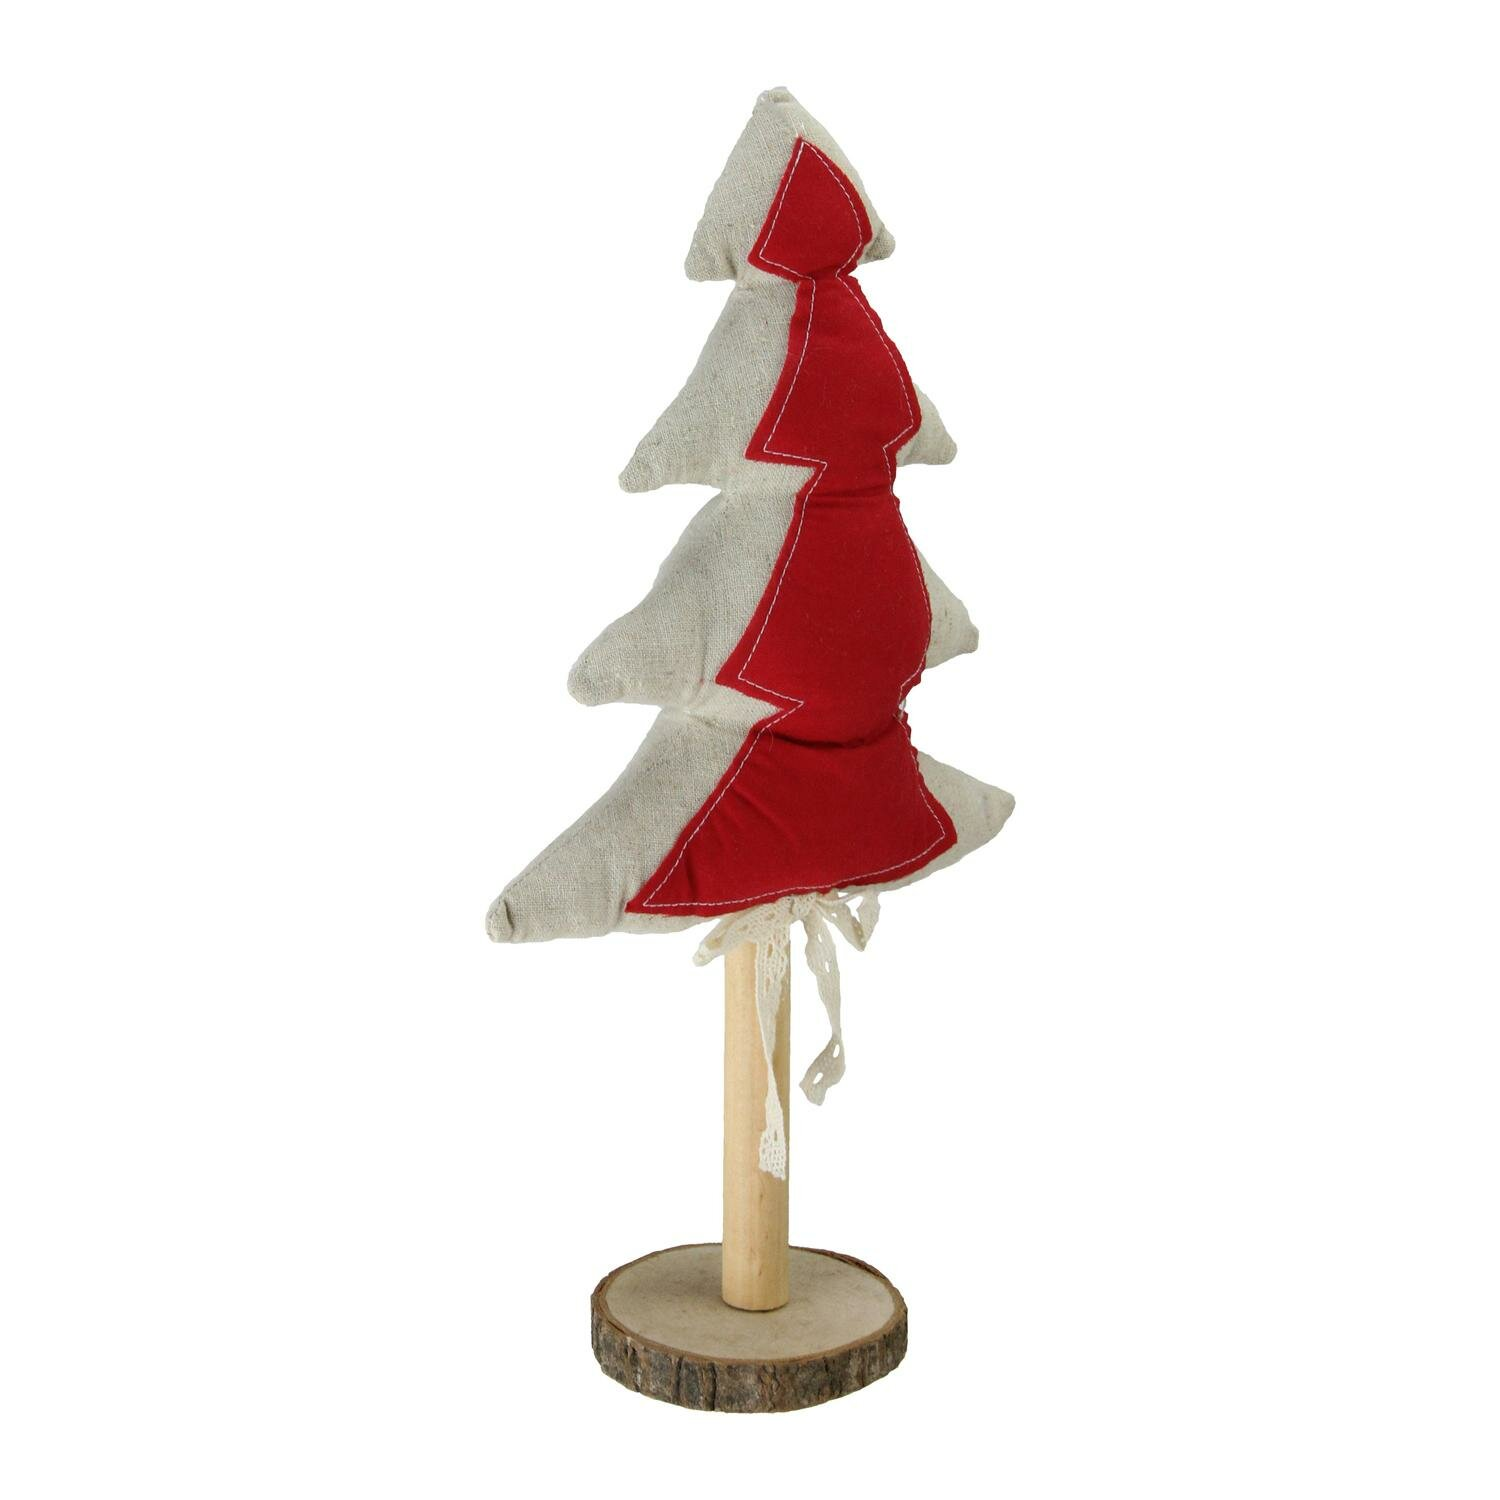 Neutral Decorative Christmas Tree Tabletop Decoration With Wooden Base